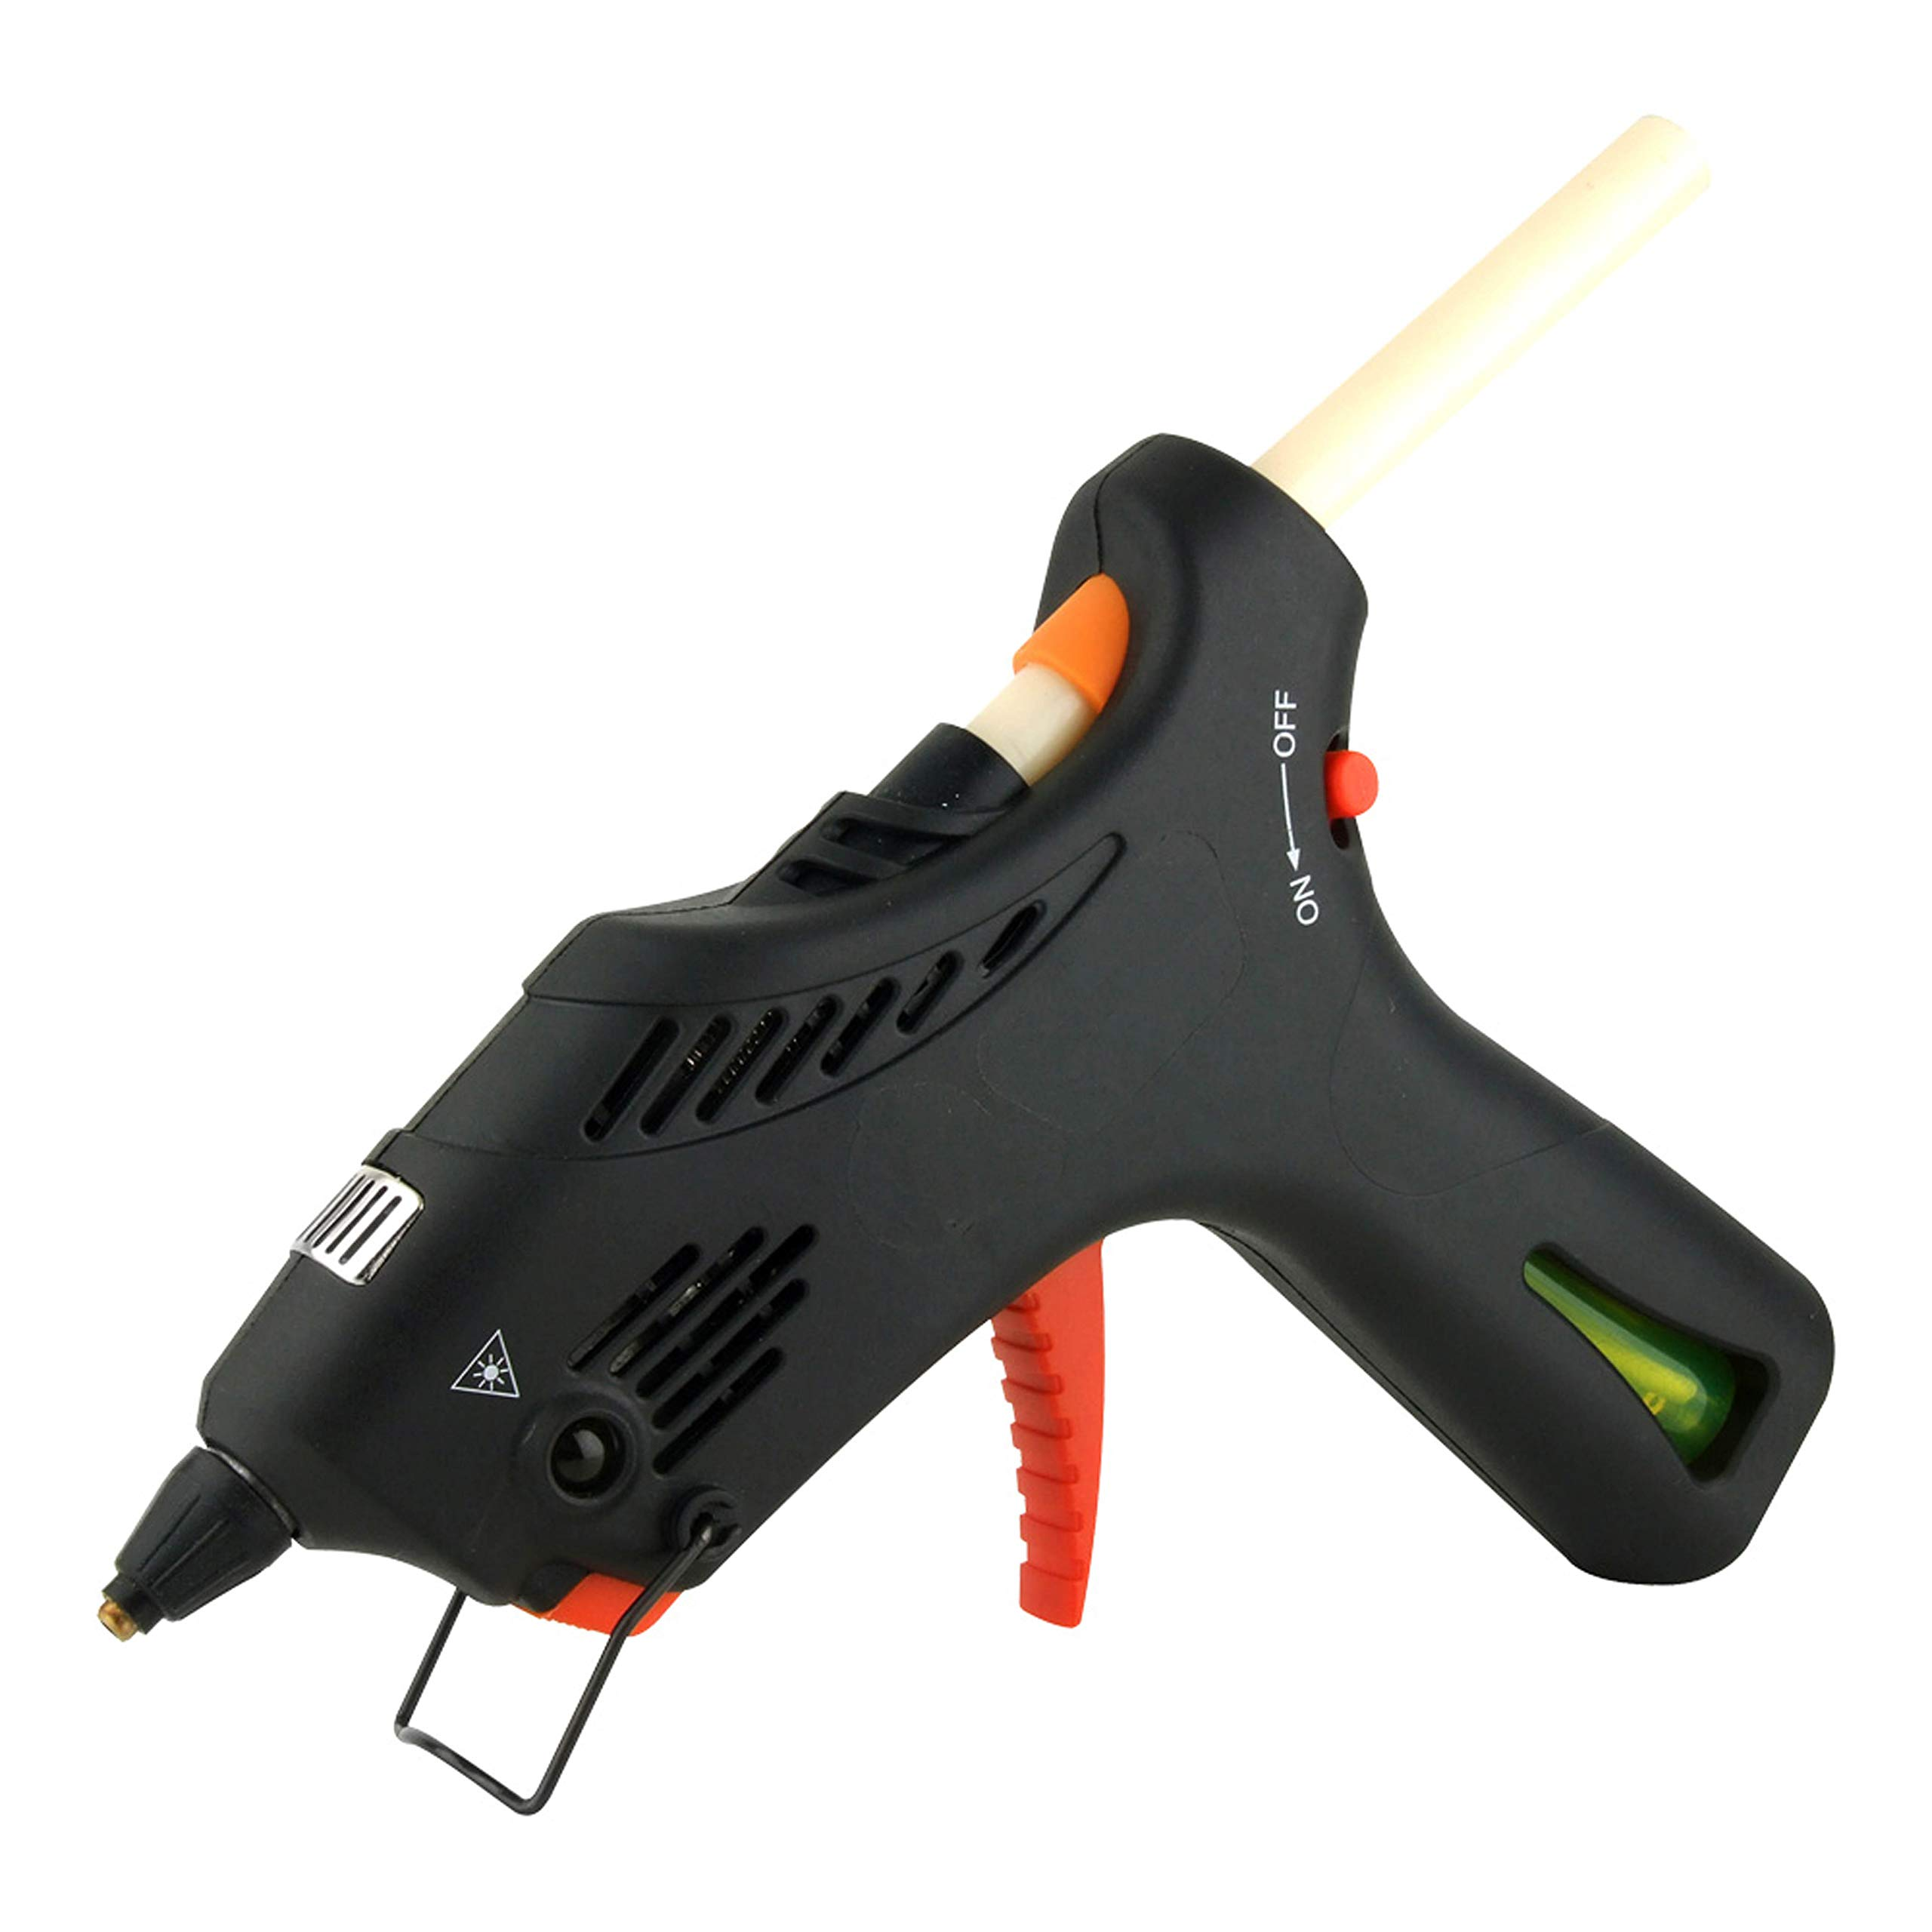 Cordless Butane Gas Glue Gun with Automatic Temperature Control & 2 Glue Stick